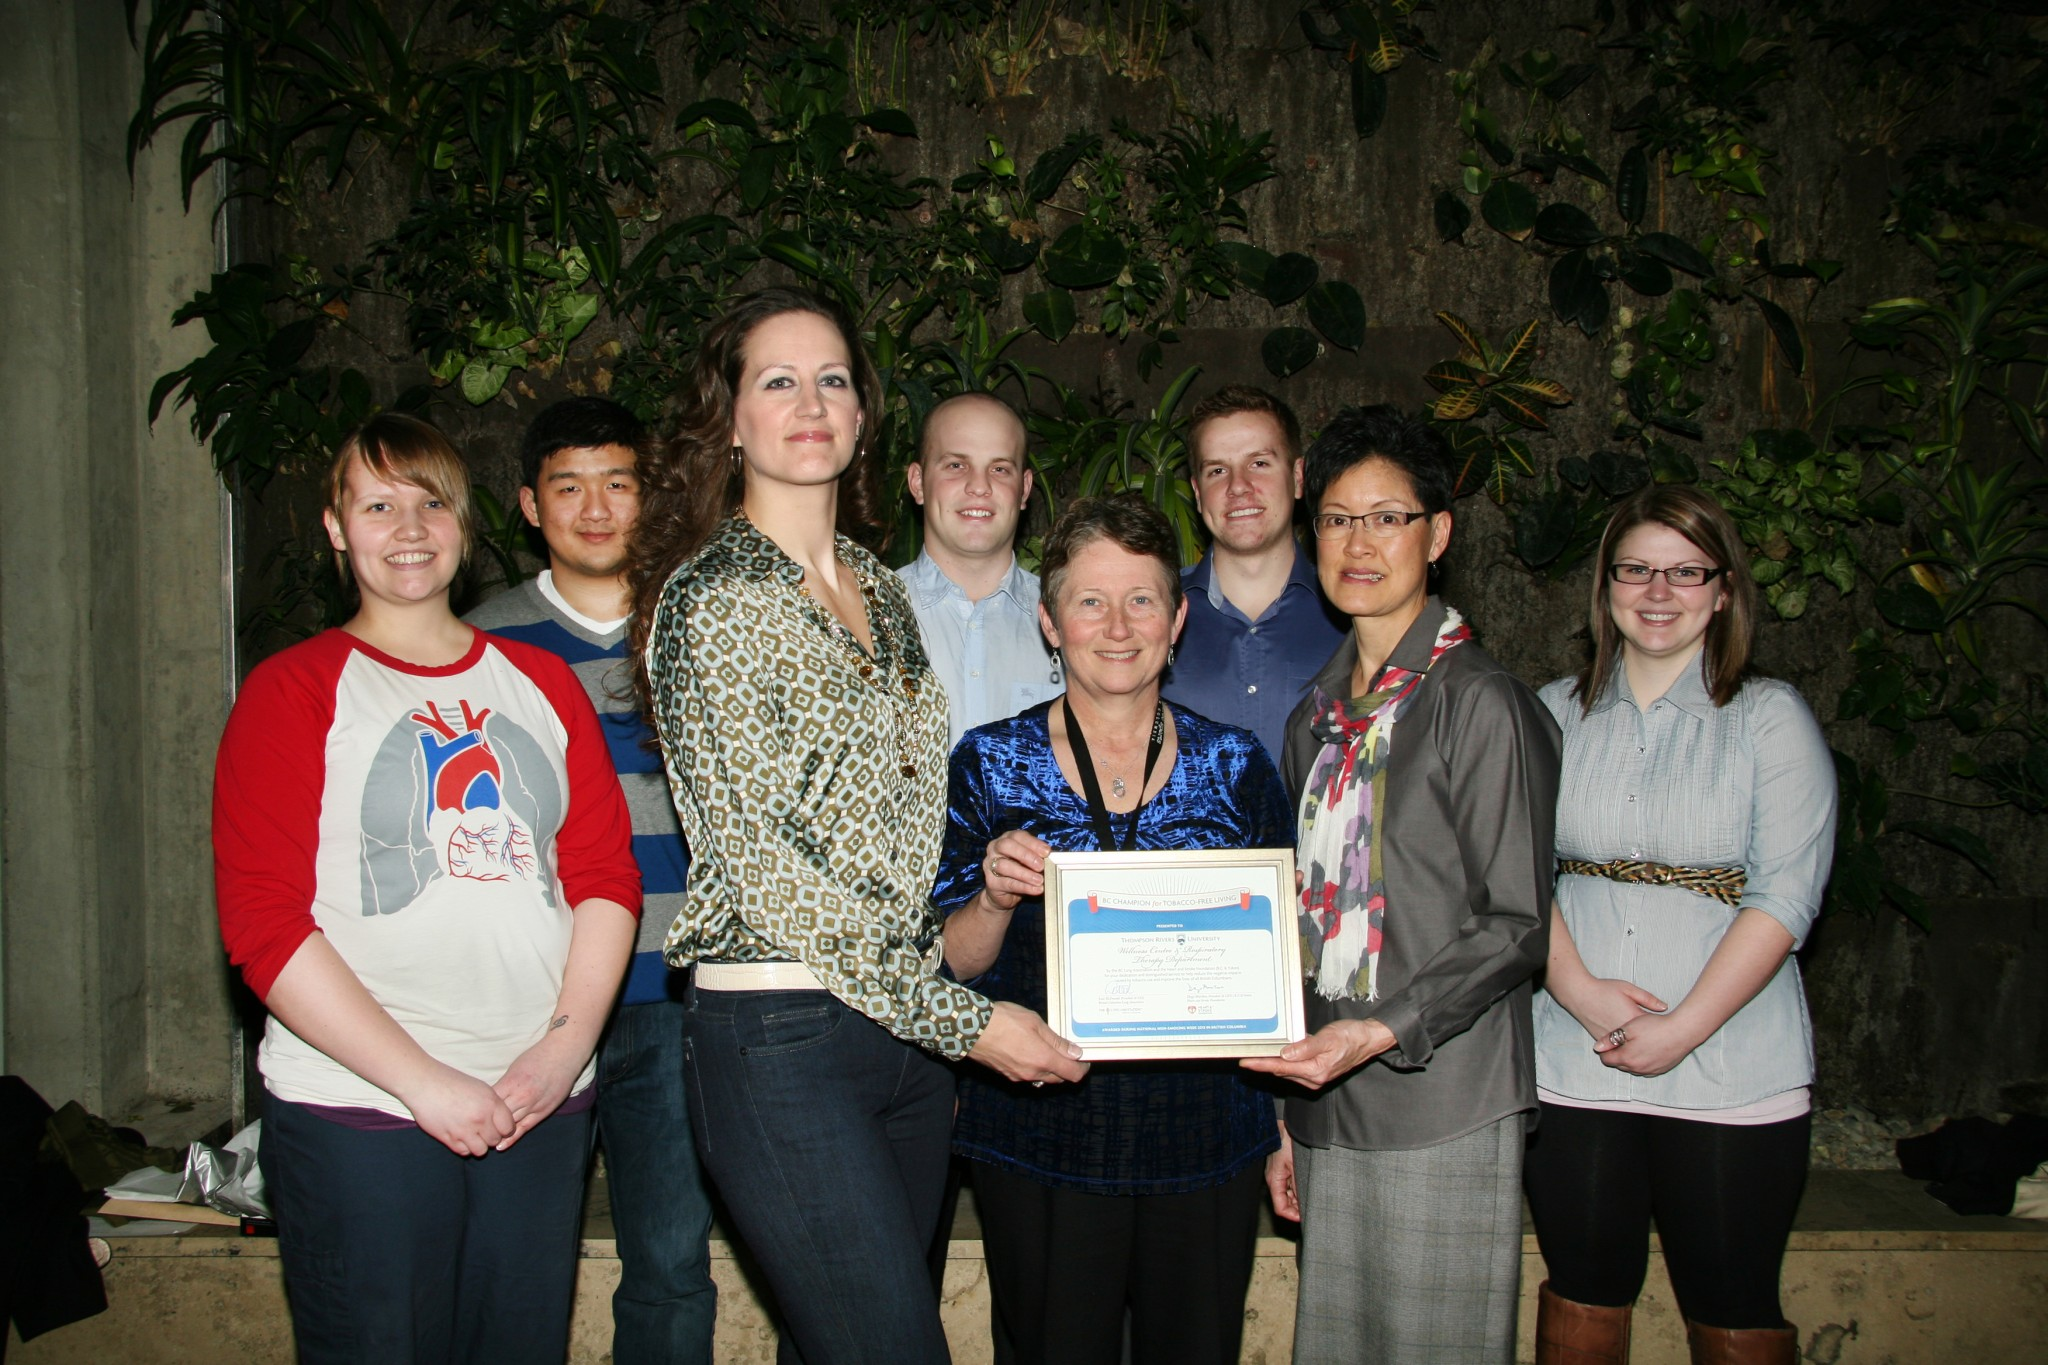 The Wellness Centre and the respiratory therapy department received an award Jan. 18 for their efforts towards tobacco reduction and smoking cessation. - Photo by Courtney Dickson